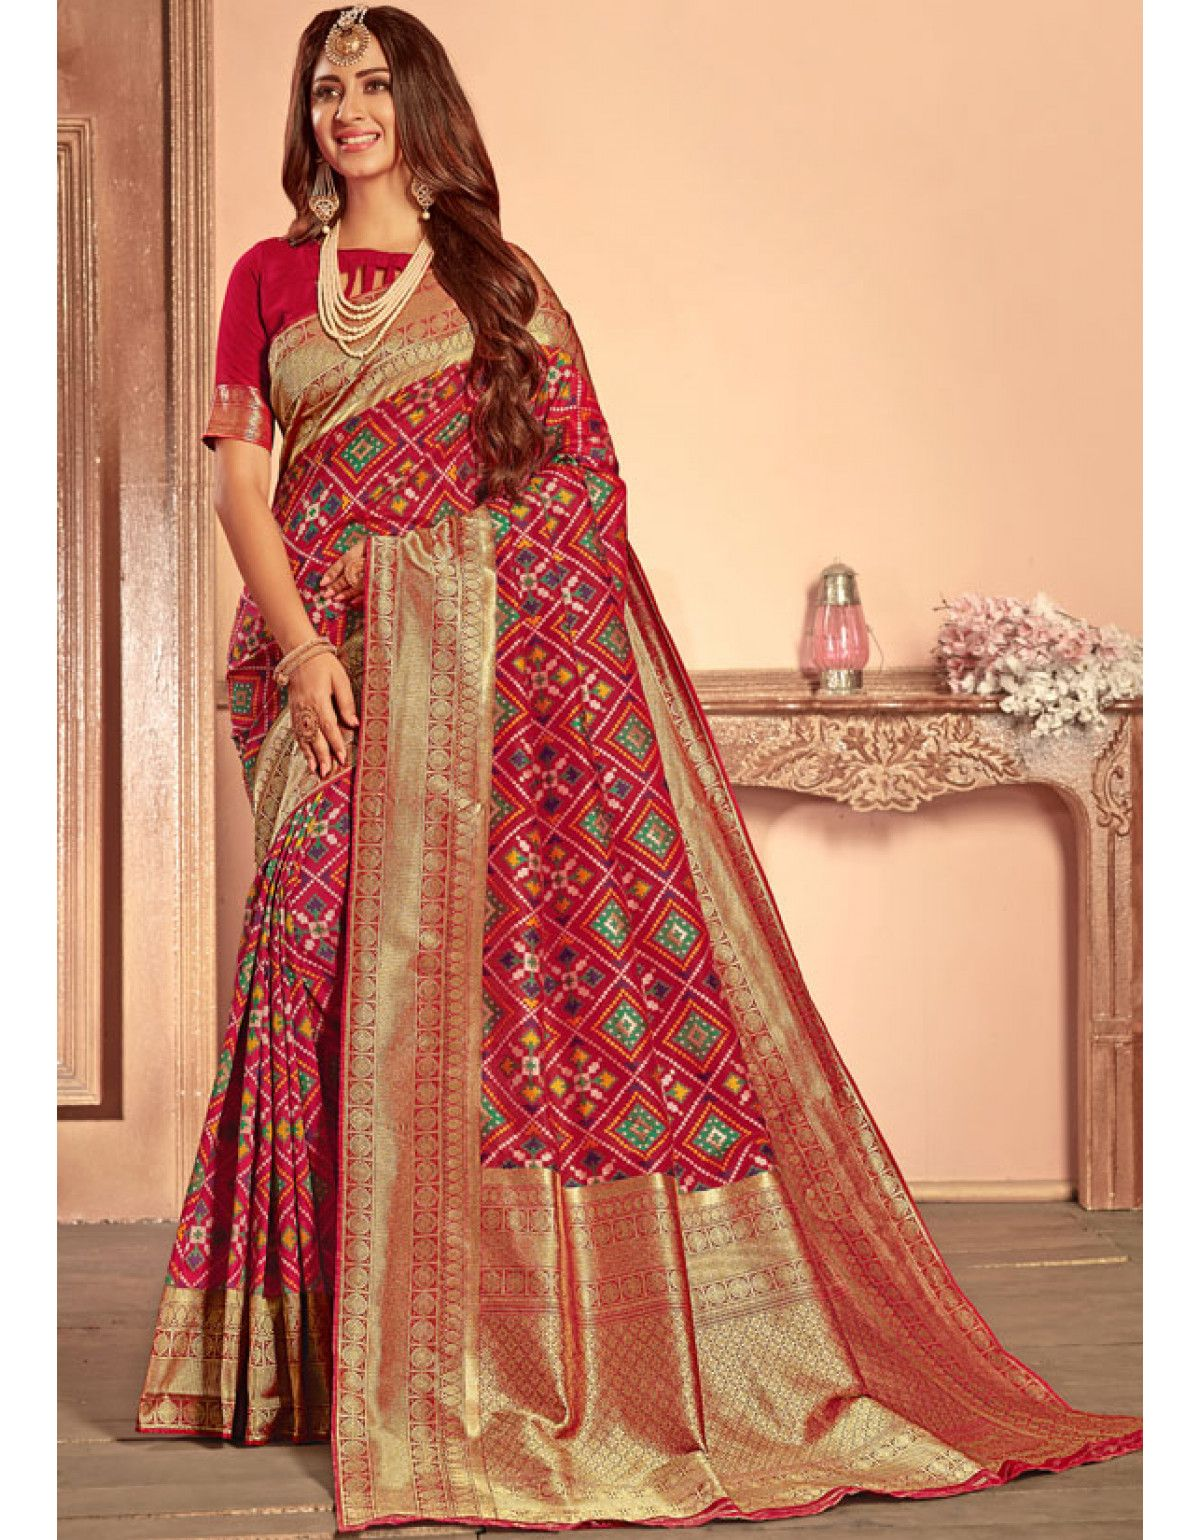 796f61c29a Berry Red Heavy Patola Silk Saree in 2019 | Traditional sarees ...